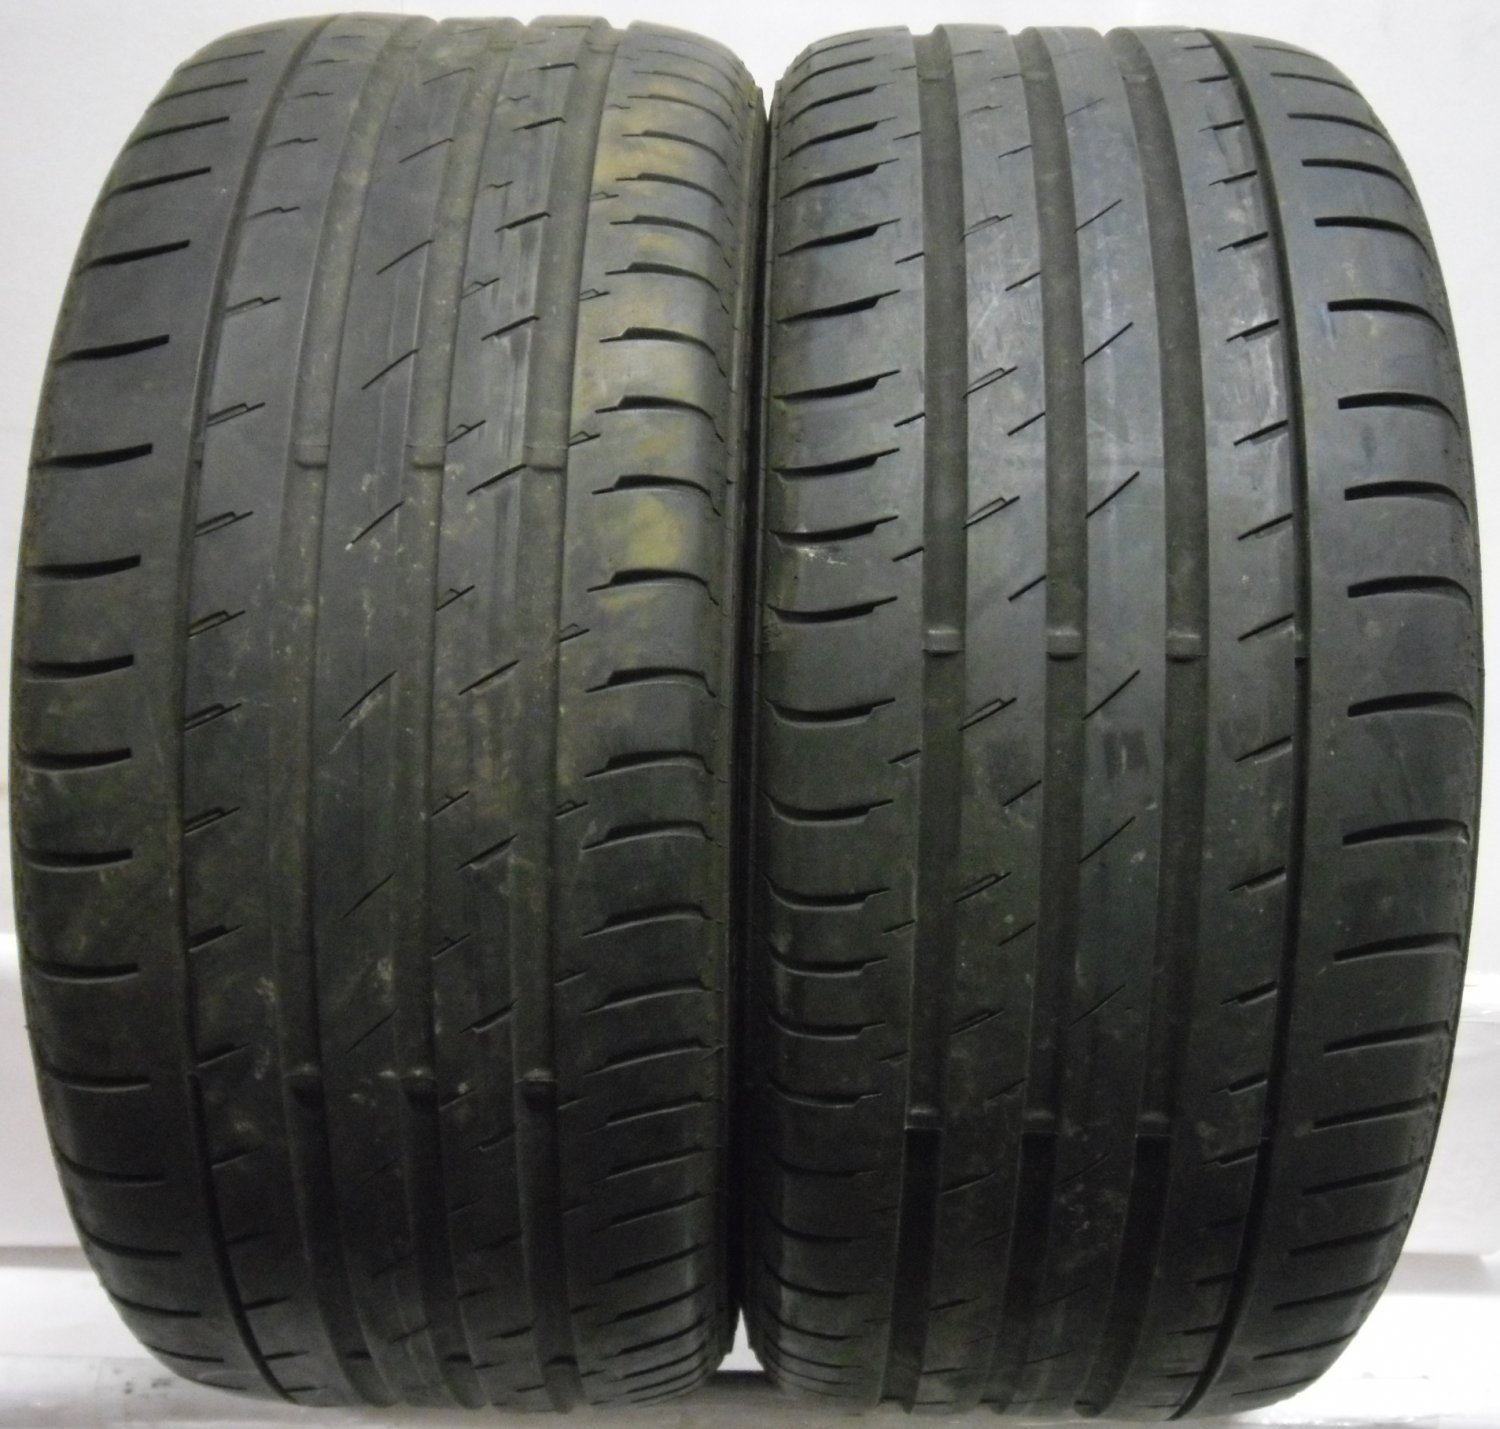 2 2454017 continental 245 40 17 conti sport contact 3 part worn used tyres x2. Black Bedroom Furniture Sets. Home Design Ideas